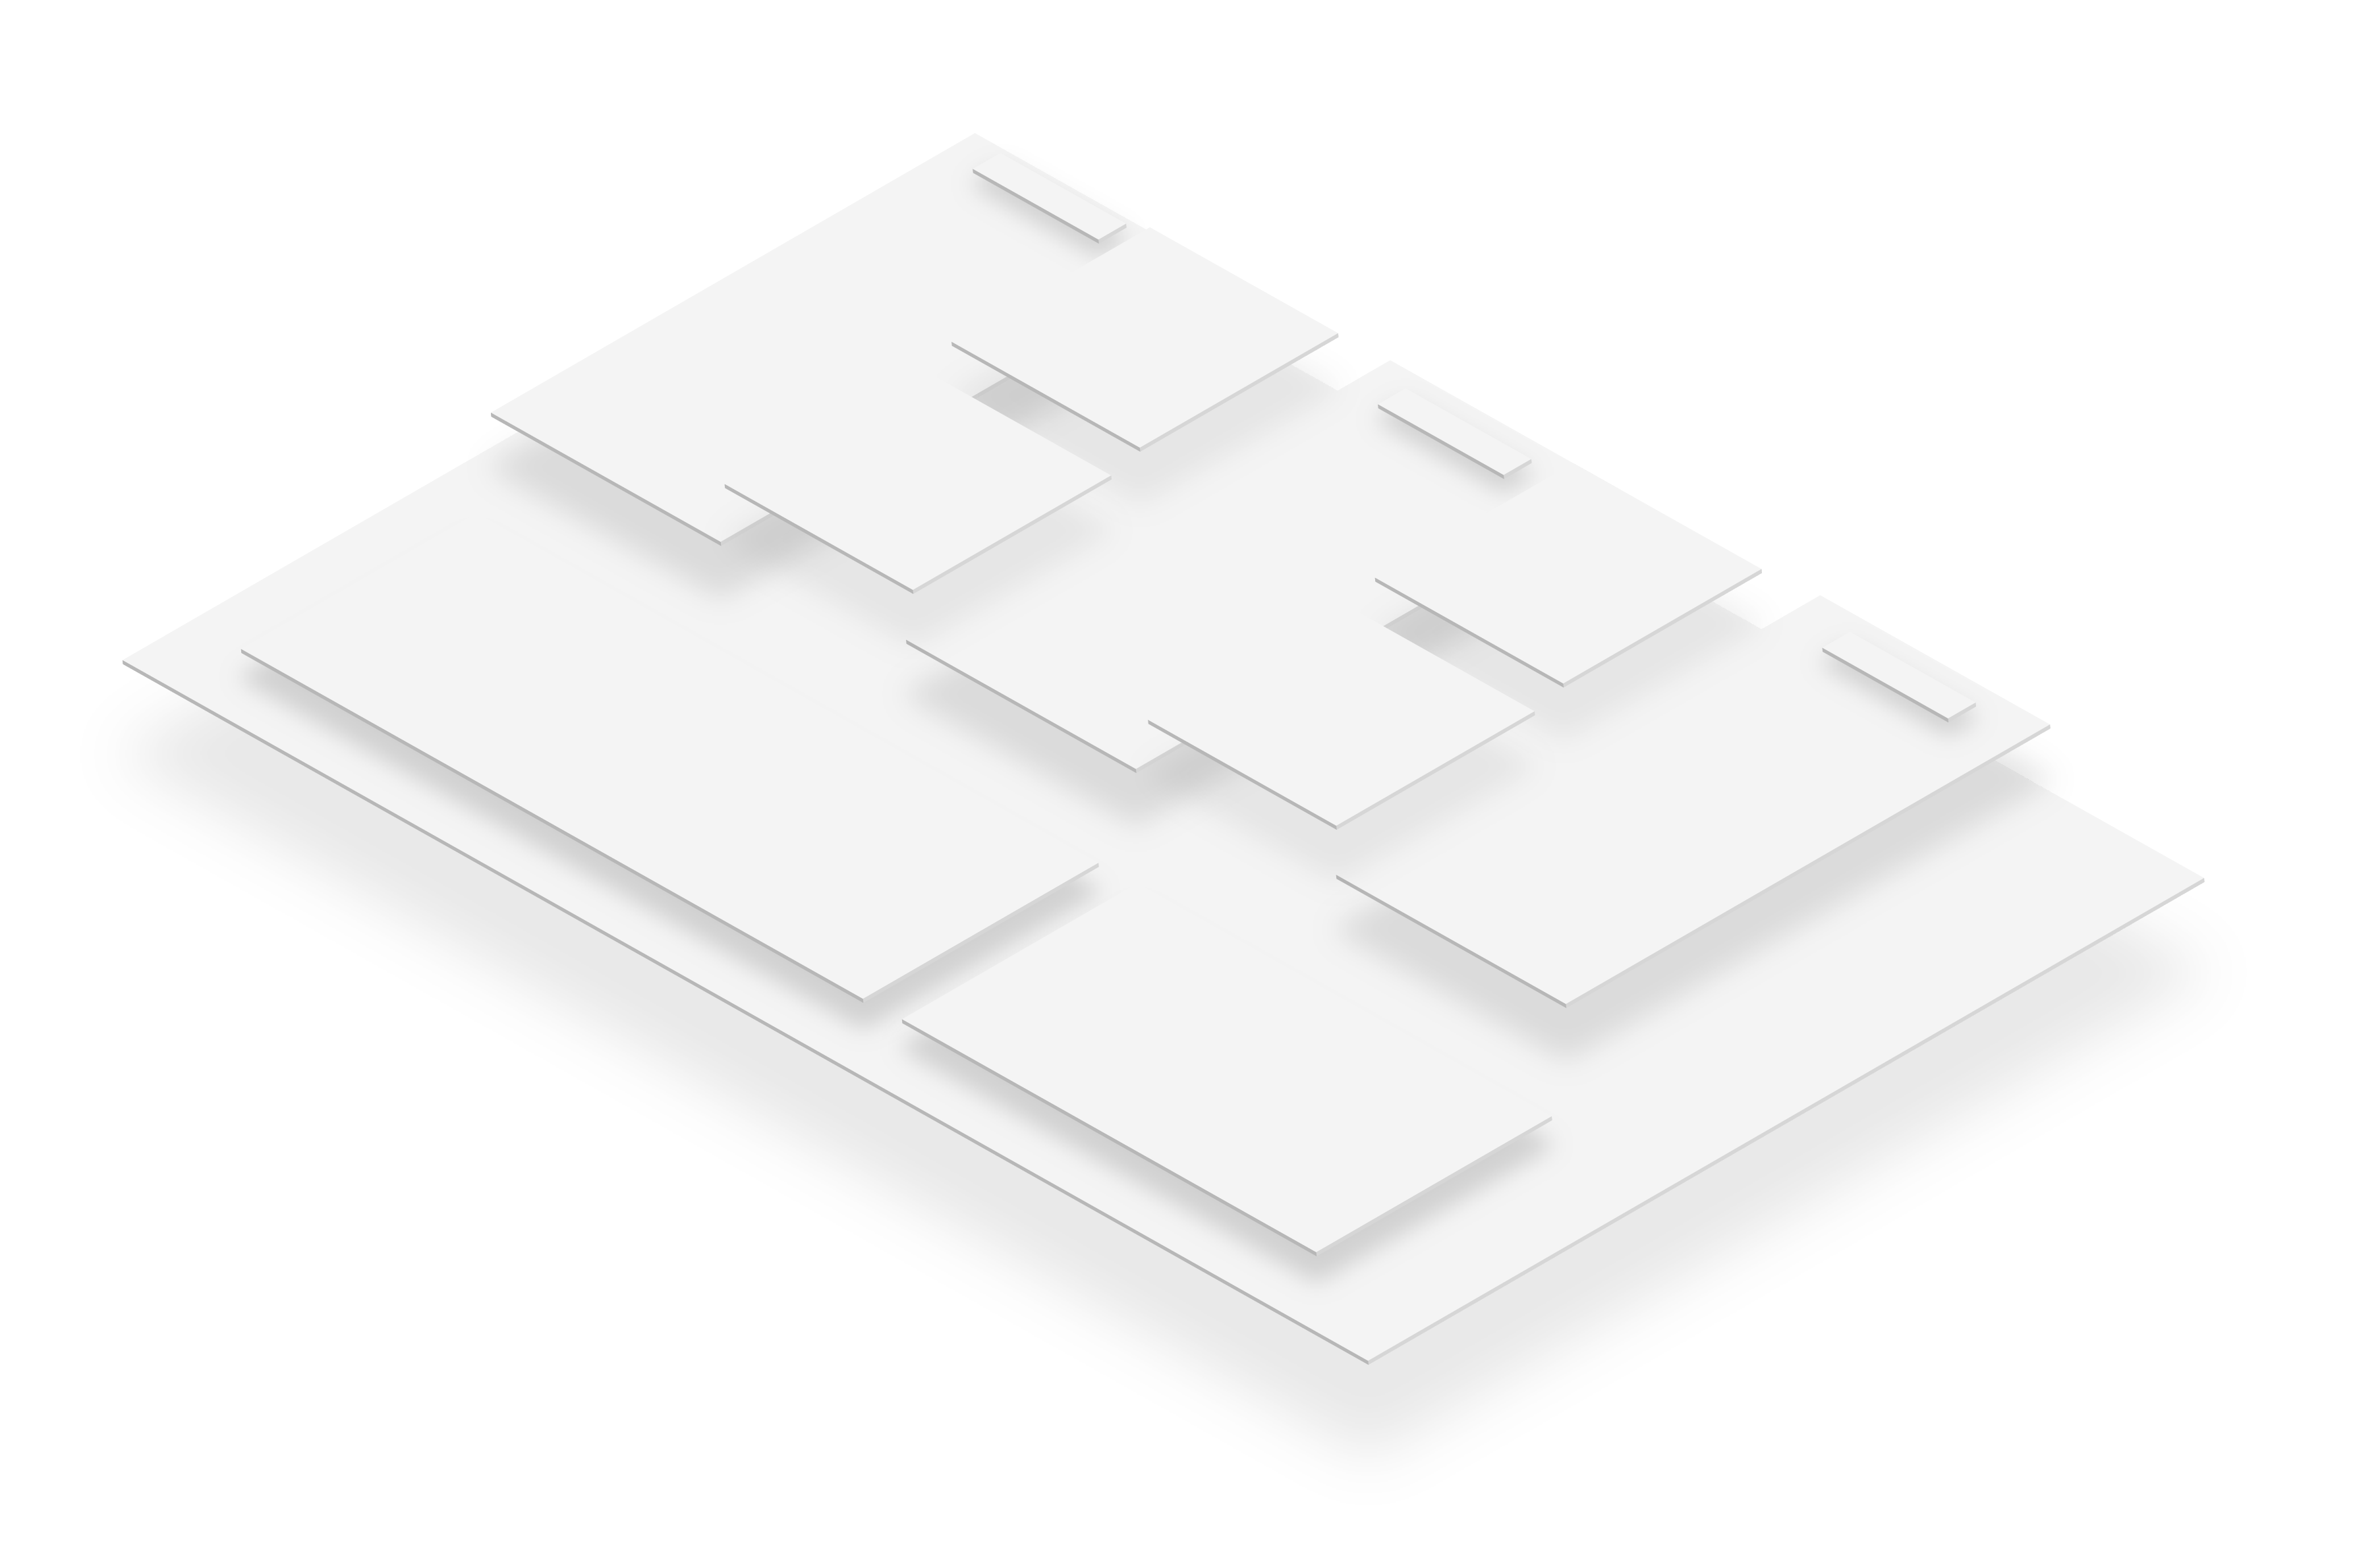 abstract white business model canvas